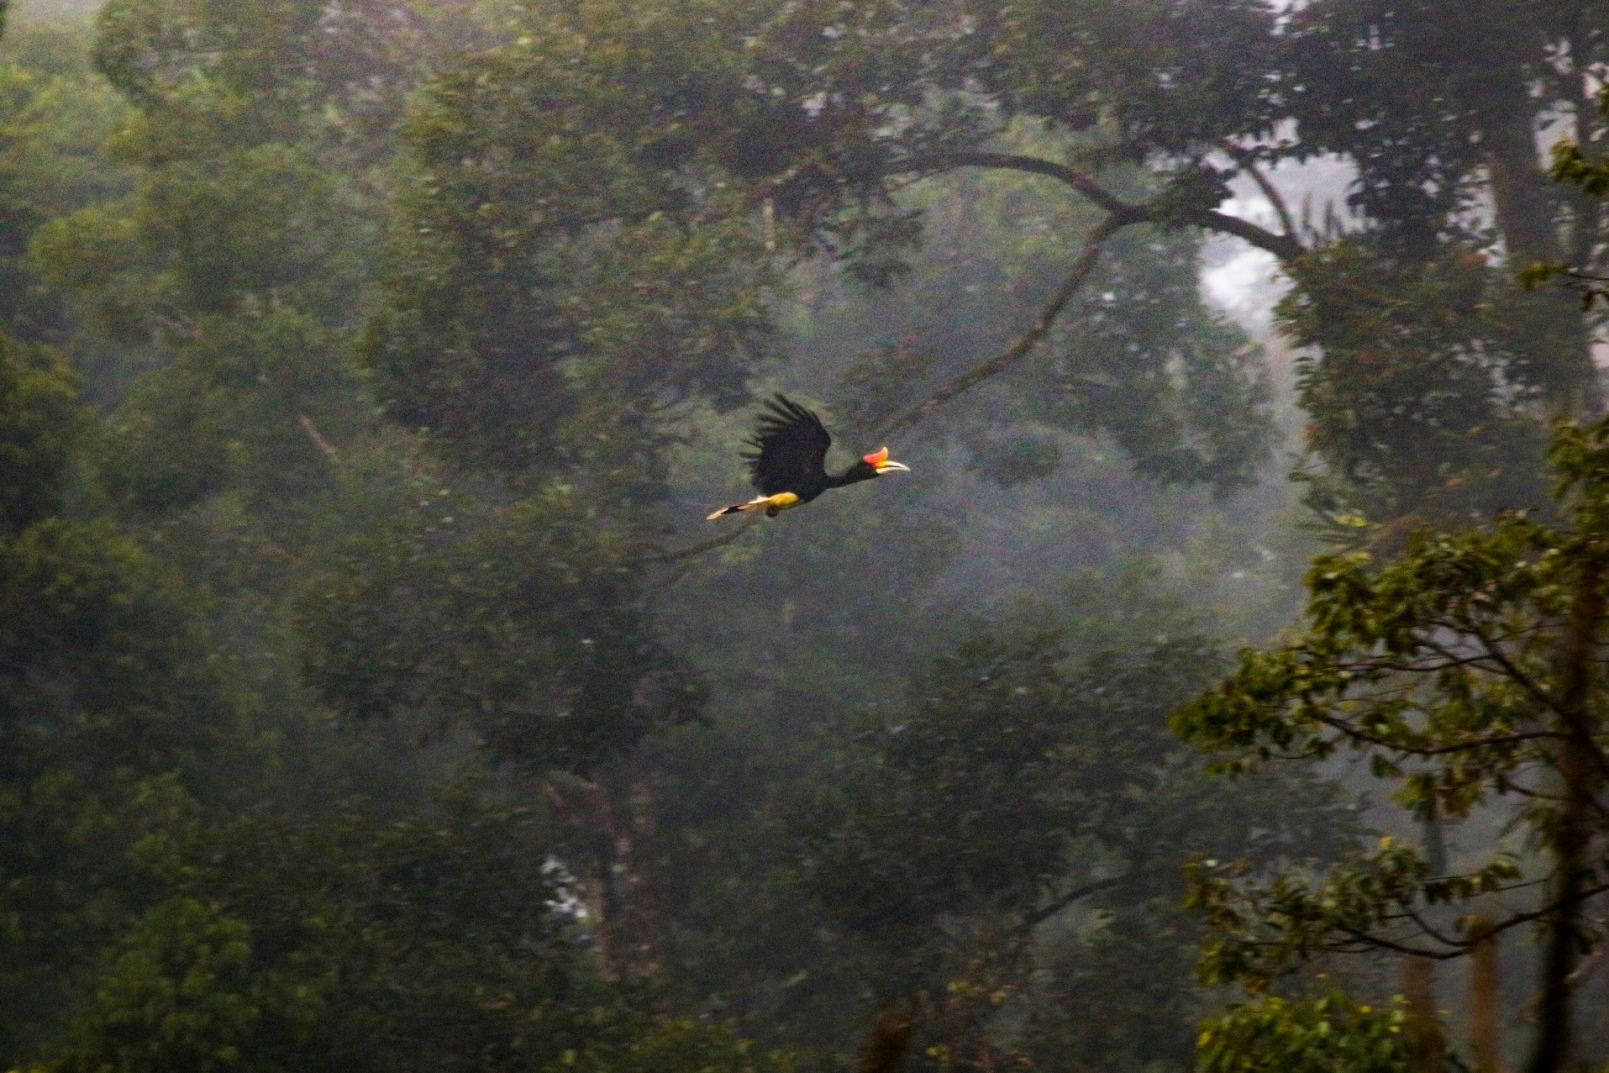 A rhinoceros hornbill flies through the forest canopy in Malaysian Borneo. These birds need extensive tracts of primary evergreen forest and nest in large trees.